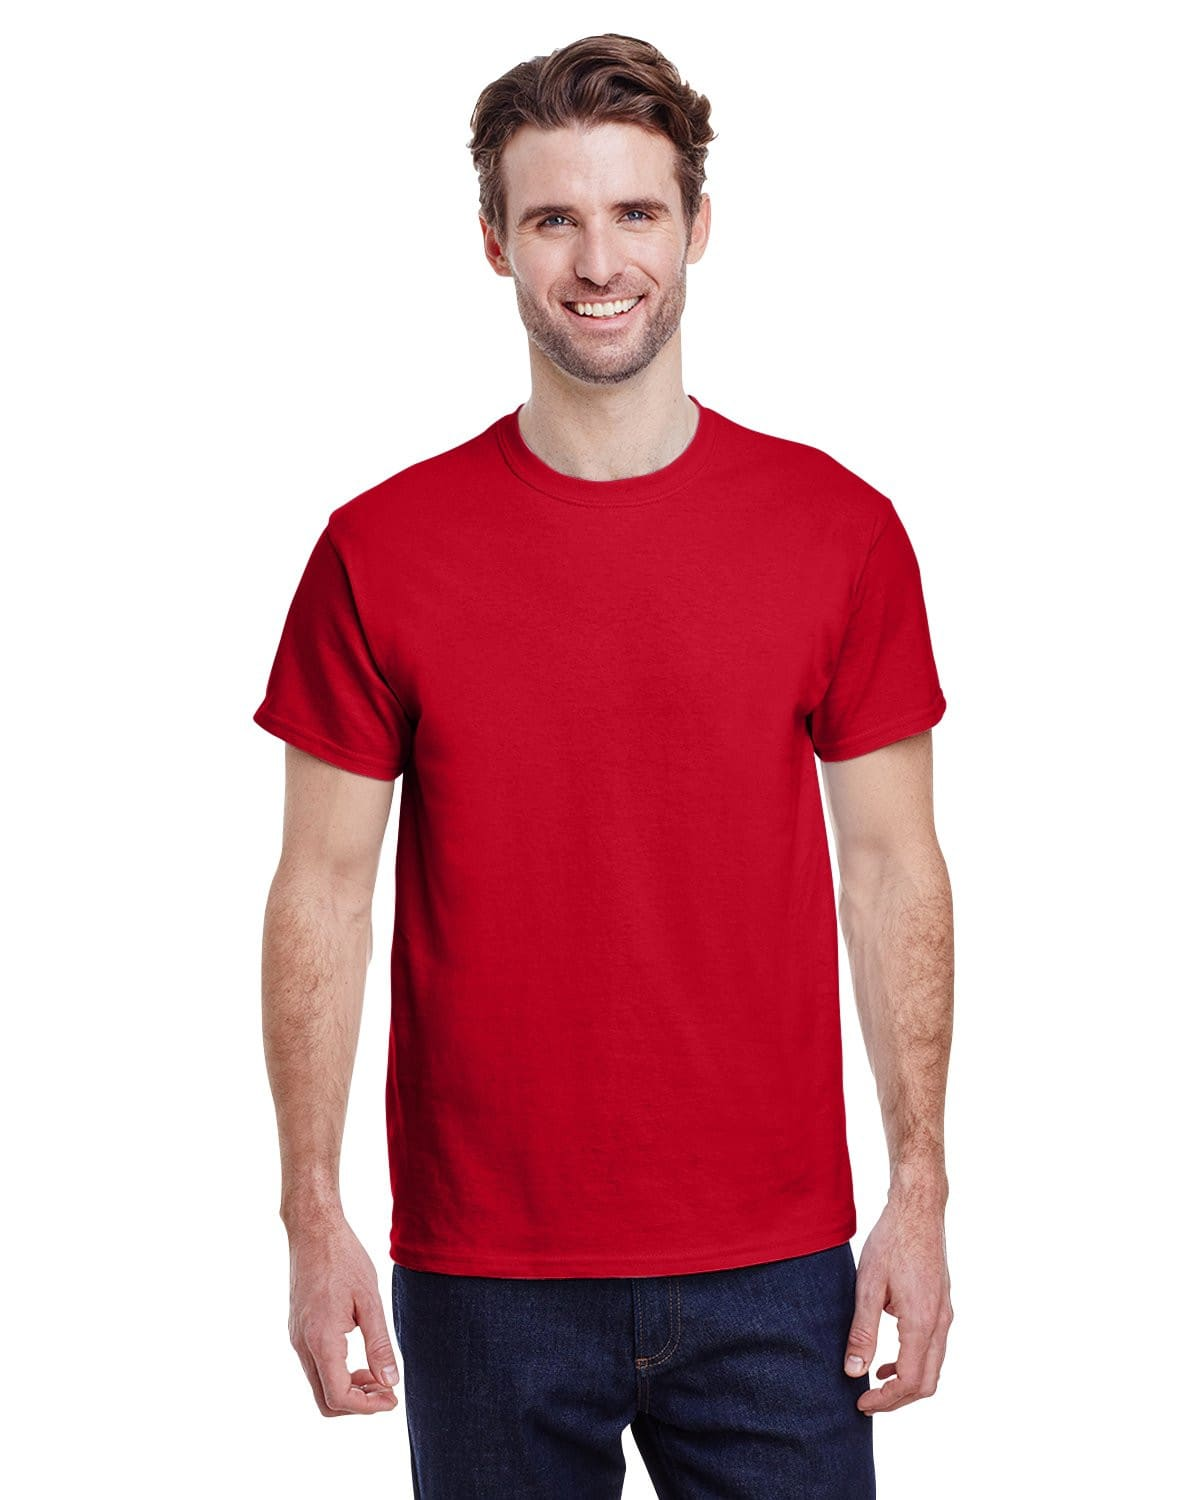 g200-adult-ultra-cotton-6-oz-t-shirt-small-Small-ANTIQ CHERRY RED-Oasispromos